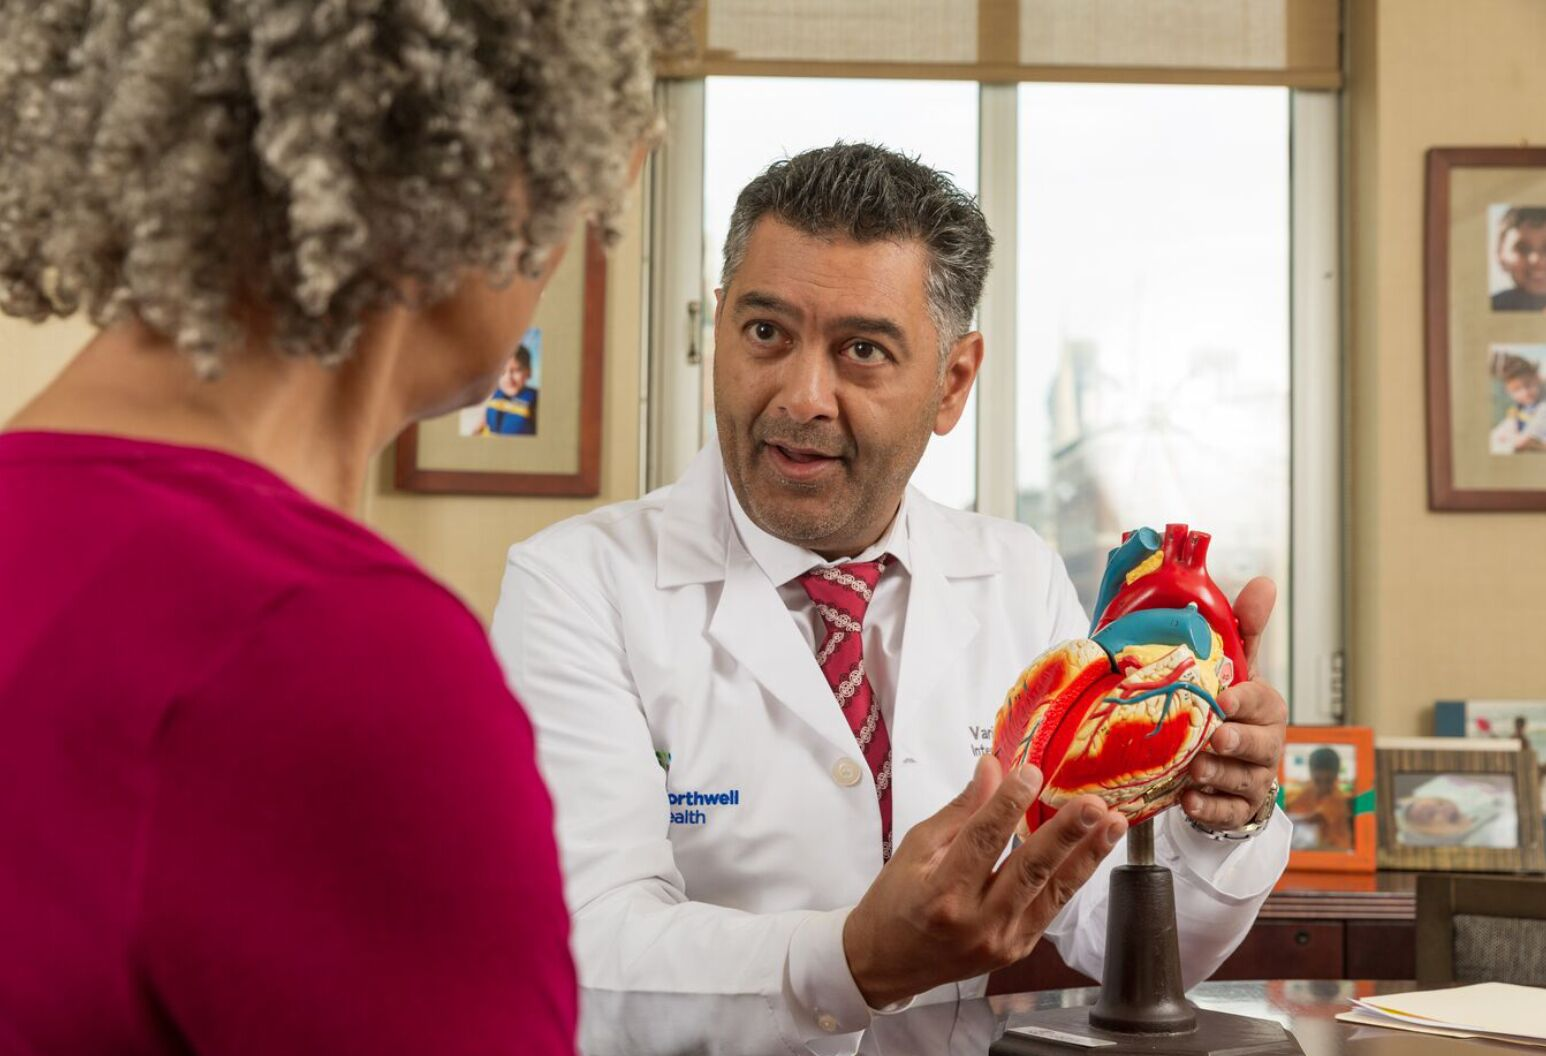 A doctor is talking with a patient. The doctor is holding a model heart.